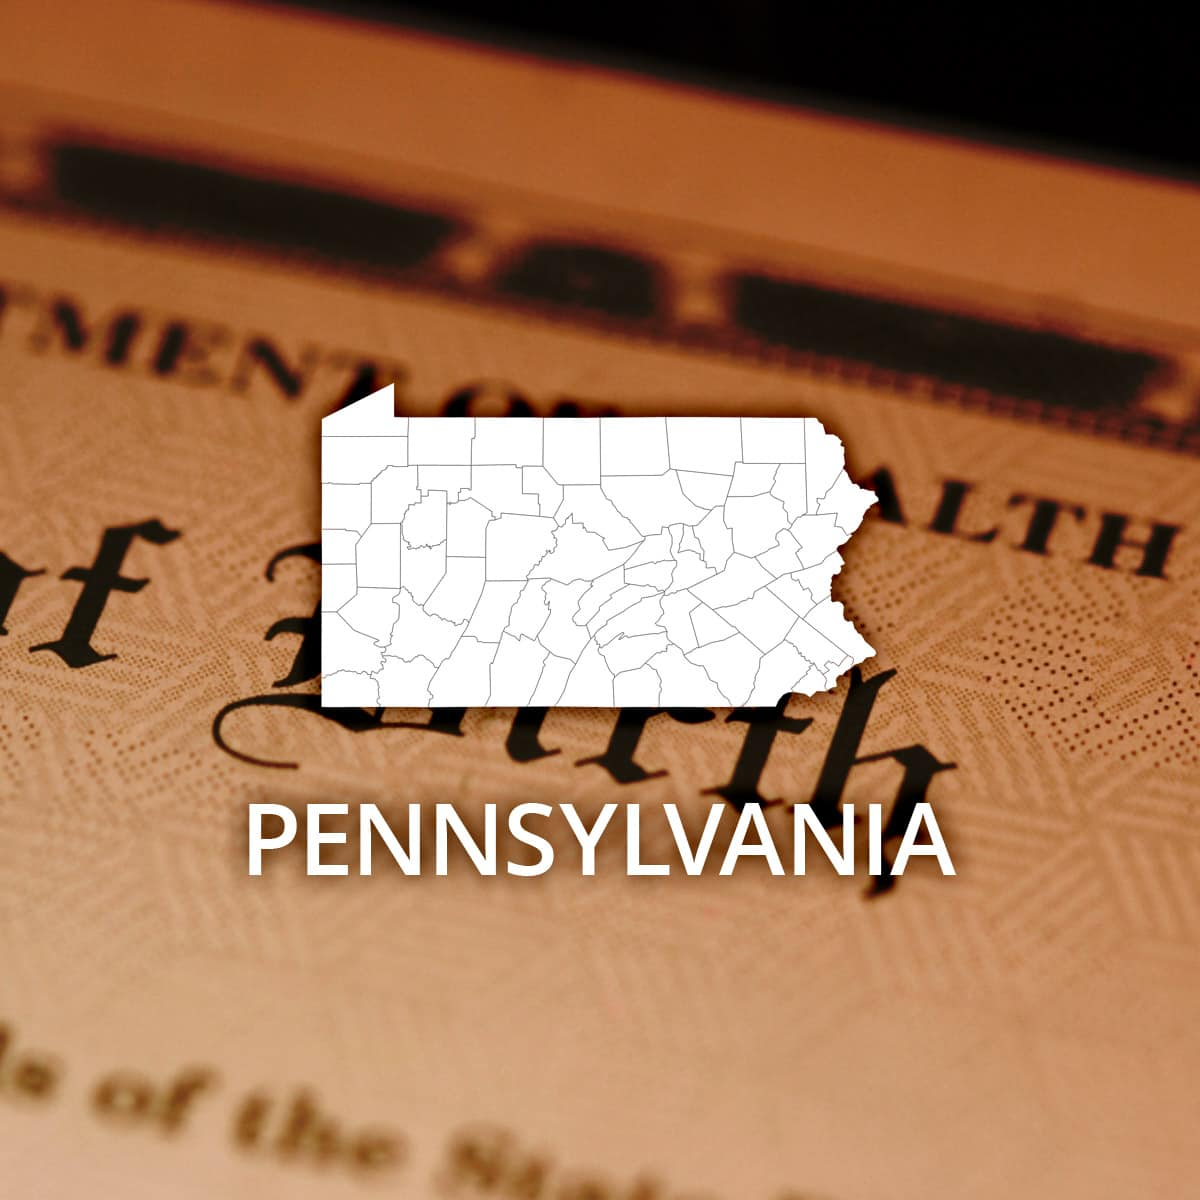 Where To Obtain A Pennsylvania Birth Certificate